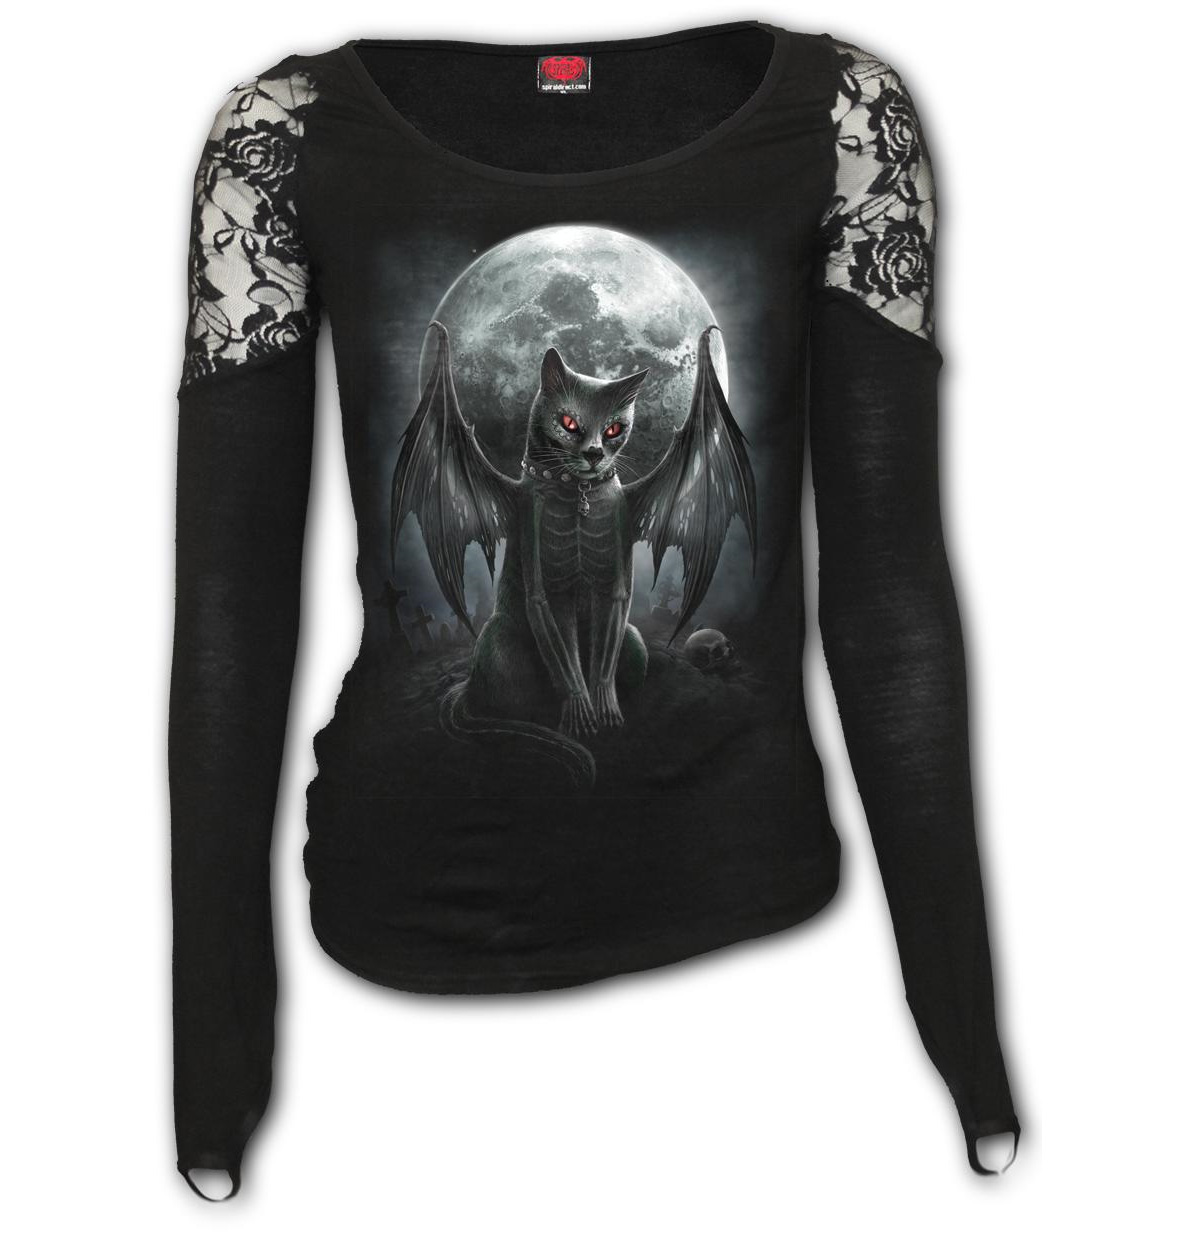 Spiral-Direct-Ladies-Gothic-Black-Top-Vampire-VAMP-CAT-L-Sleeve-Lace-All-Sizes thumbnail 7